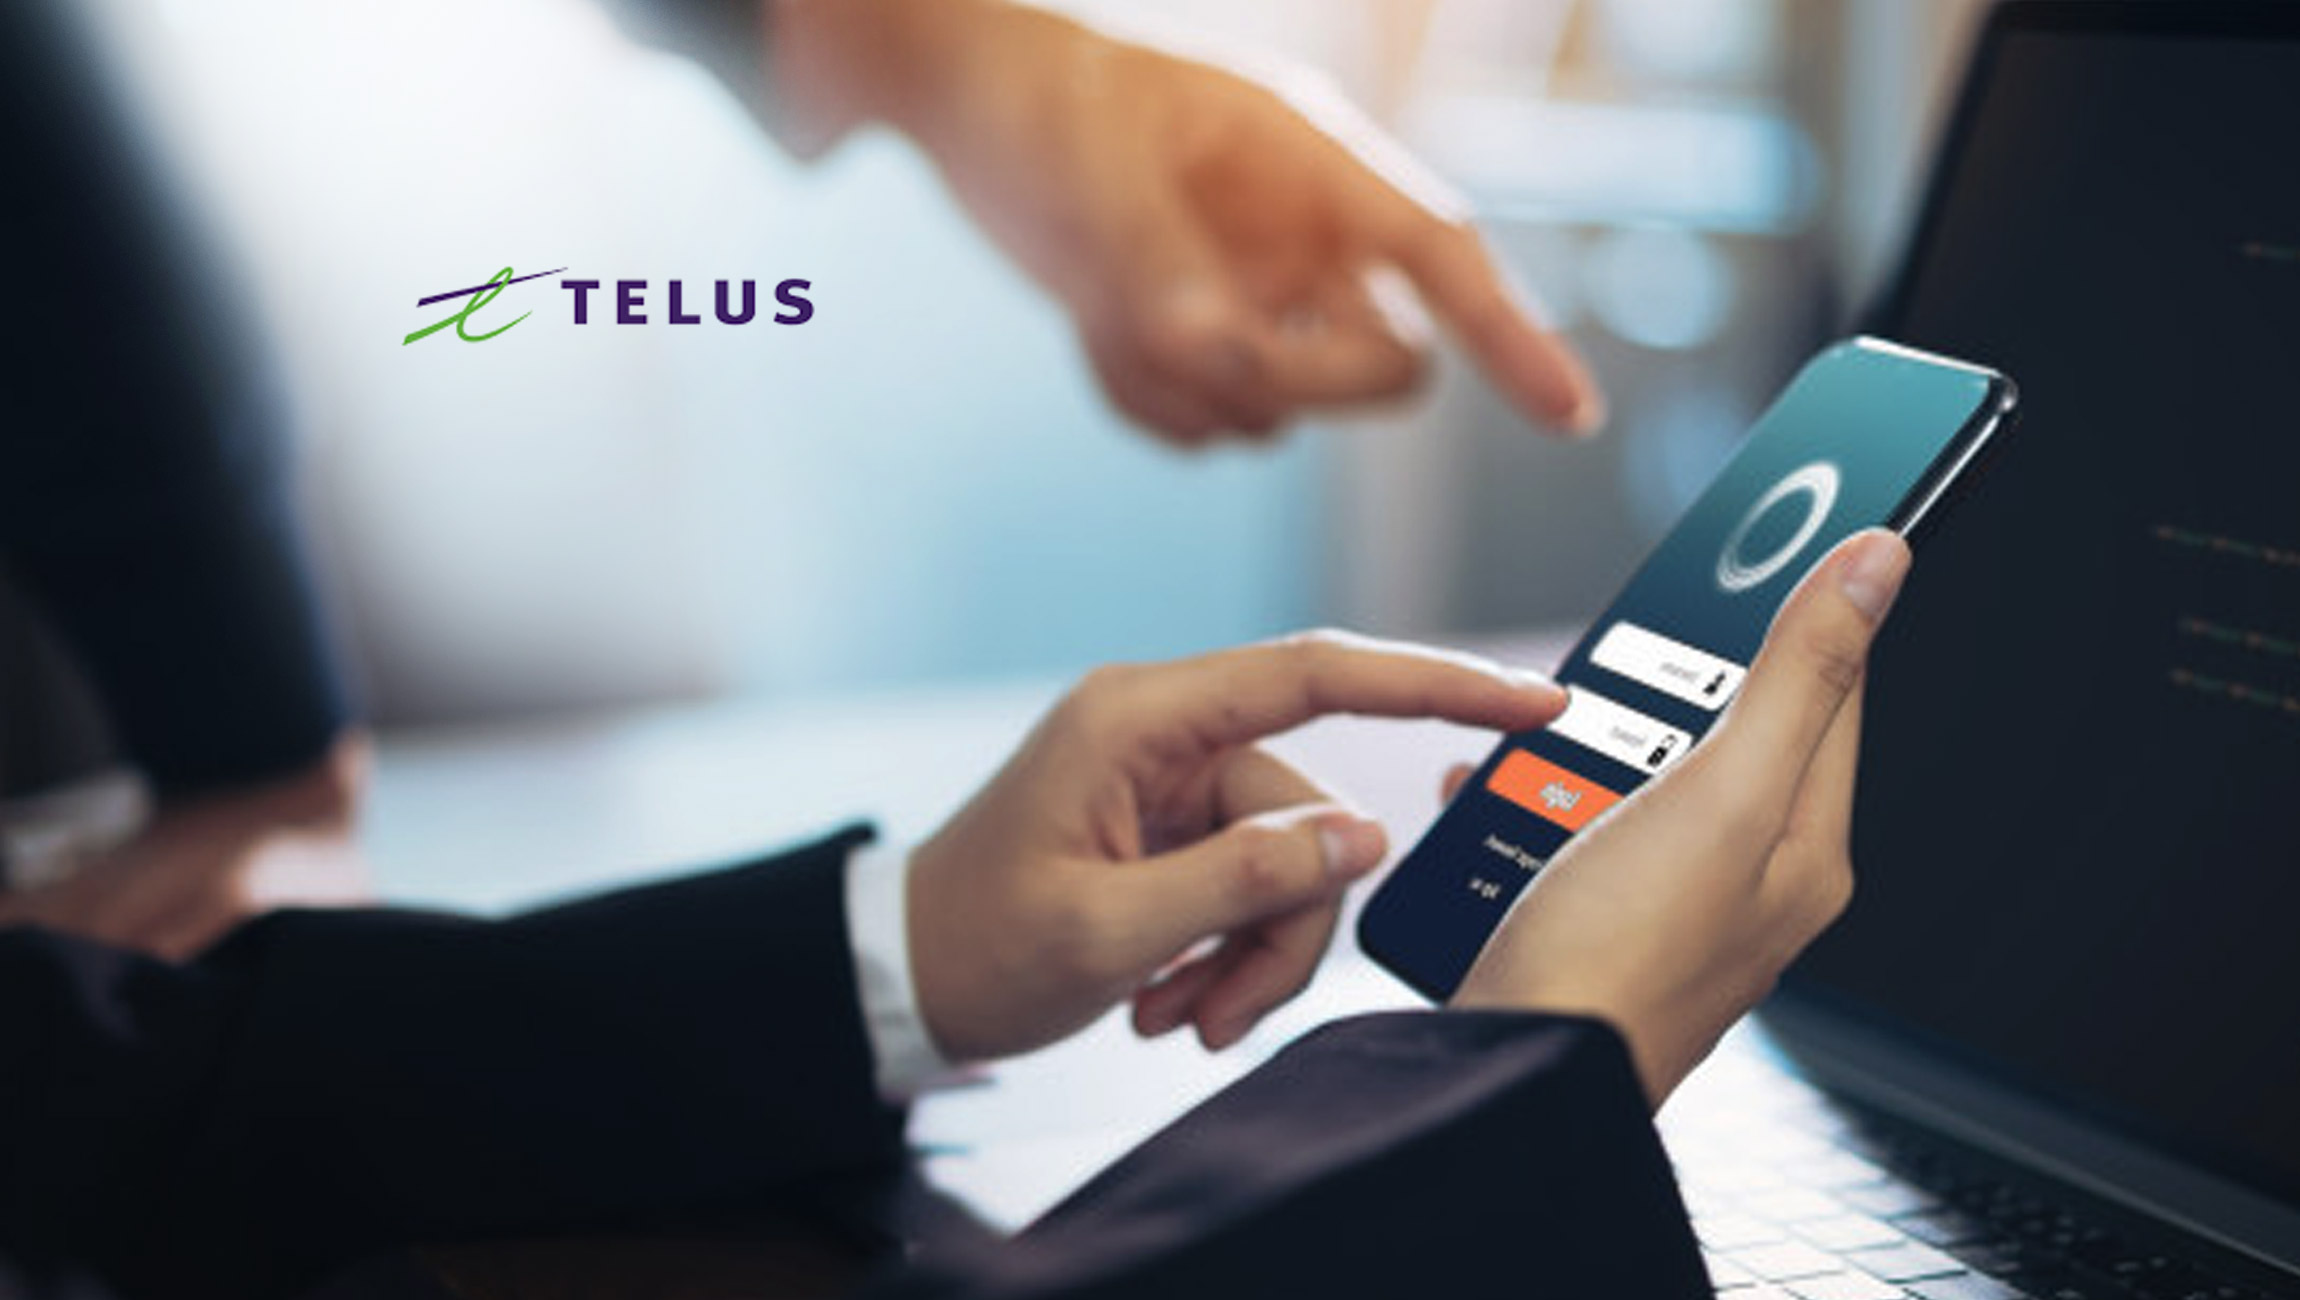 TELUS International Enhances Track Record as a Global Leader in Digital Solutions and Customer Experience